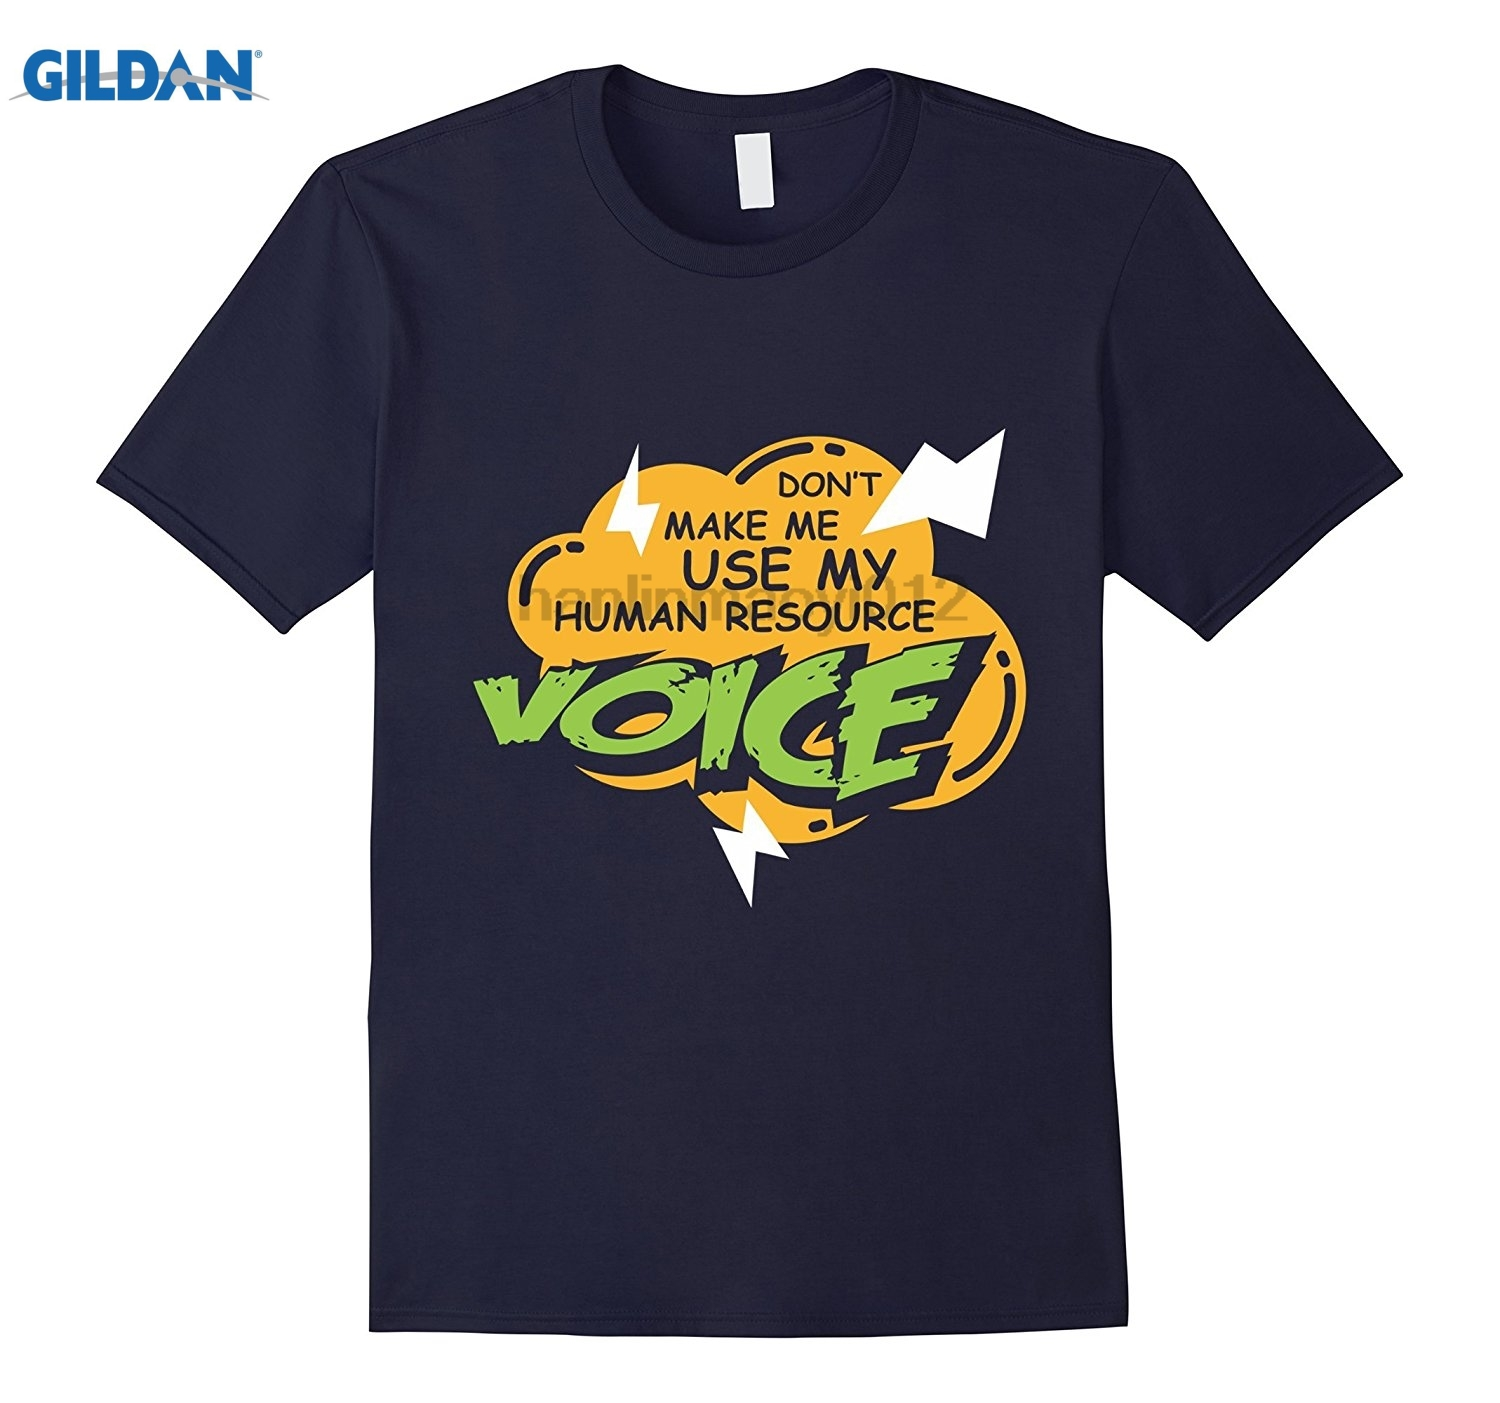 GILDAN Dont Make Me Use My Voice Human Resource Gift T-Shirt Womens T-shirt